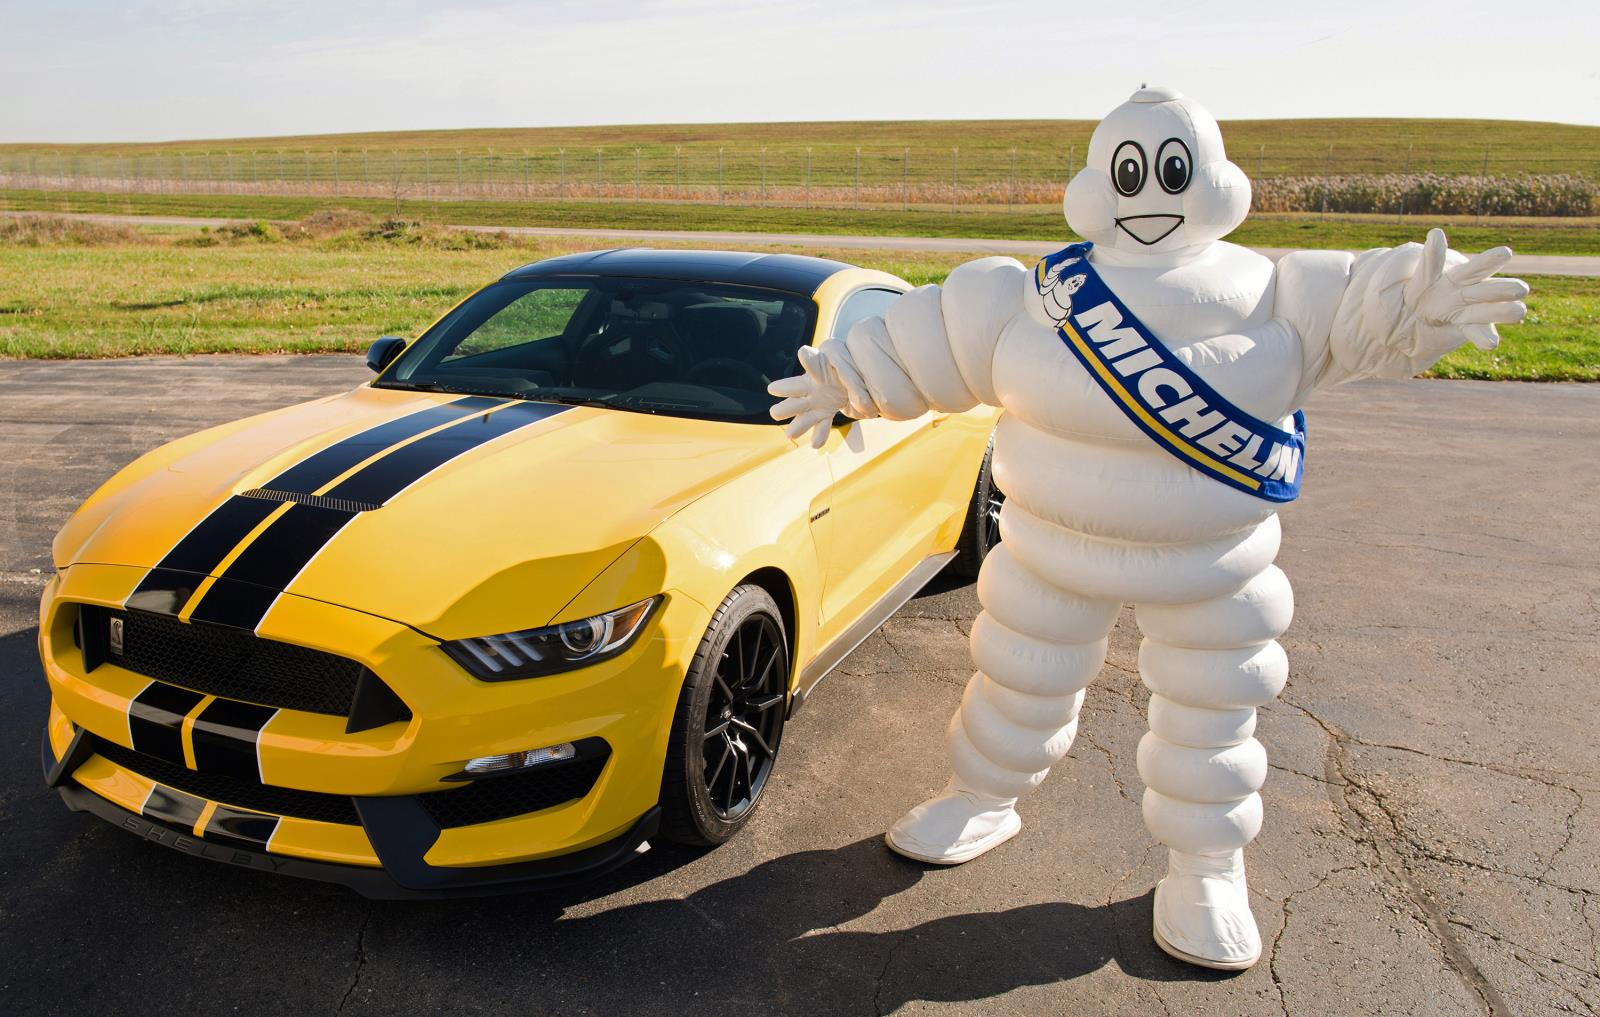 MichelinMan_39A6506_MR.jpg